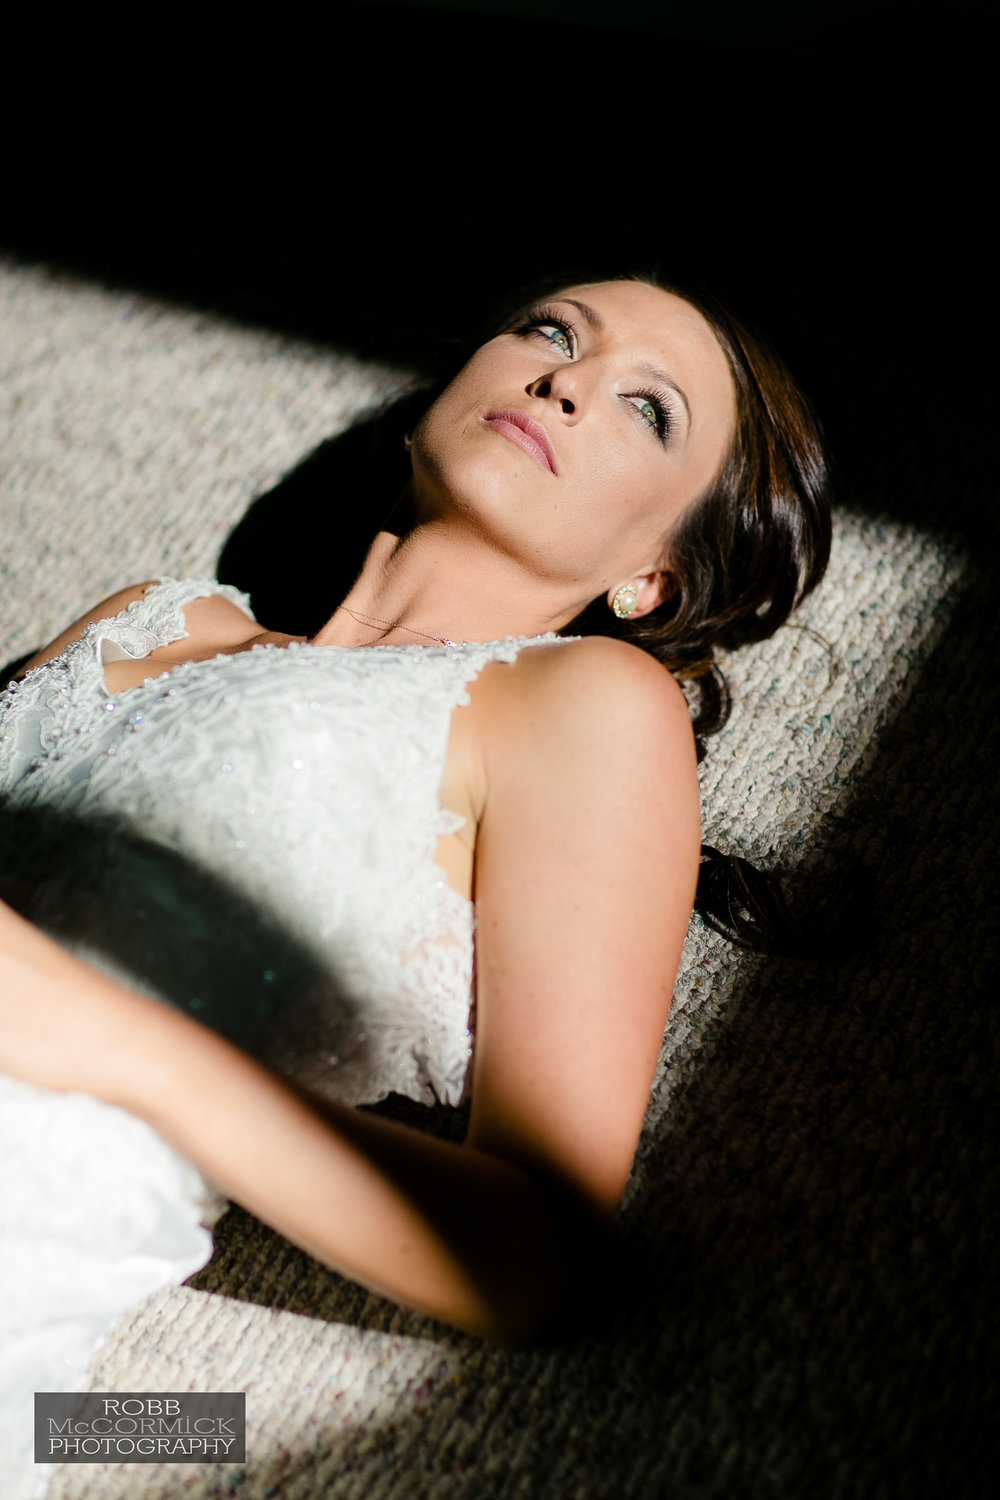 Robb McCormick Photography - Wedding Photographer (66 of 128).jpg